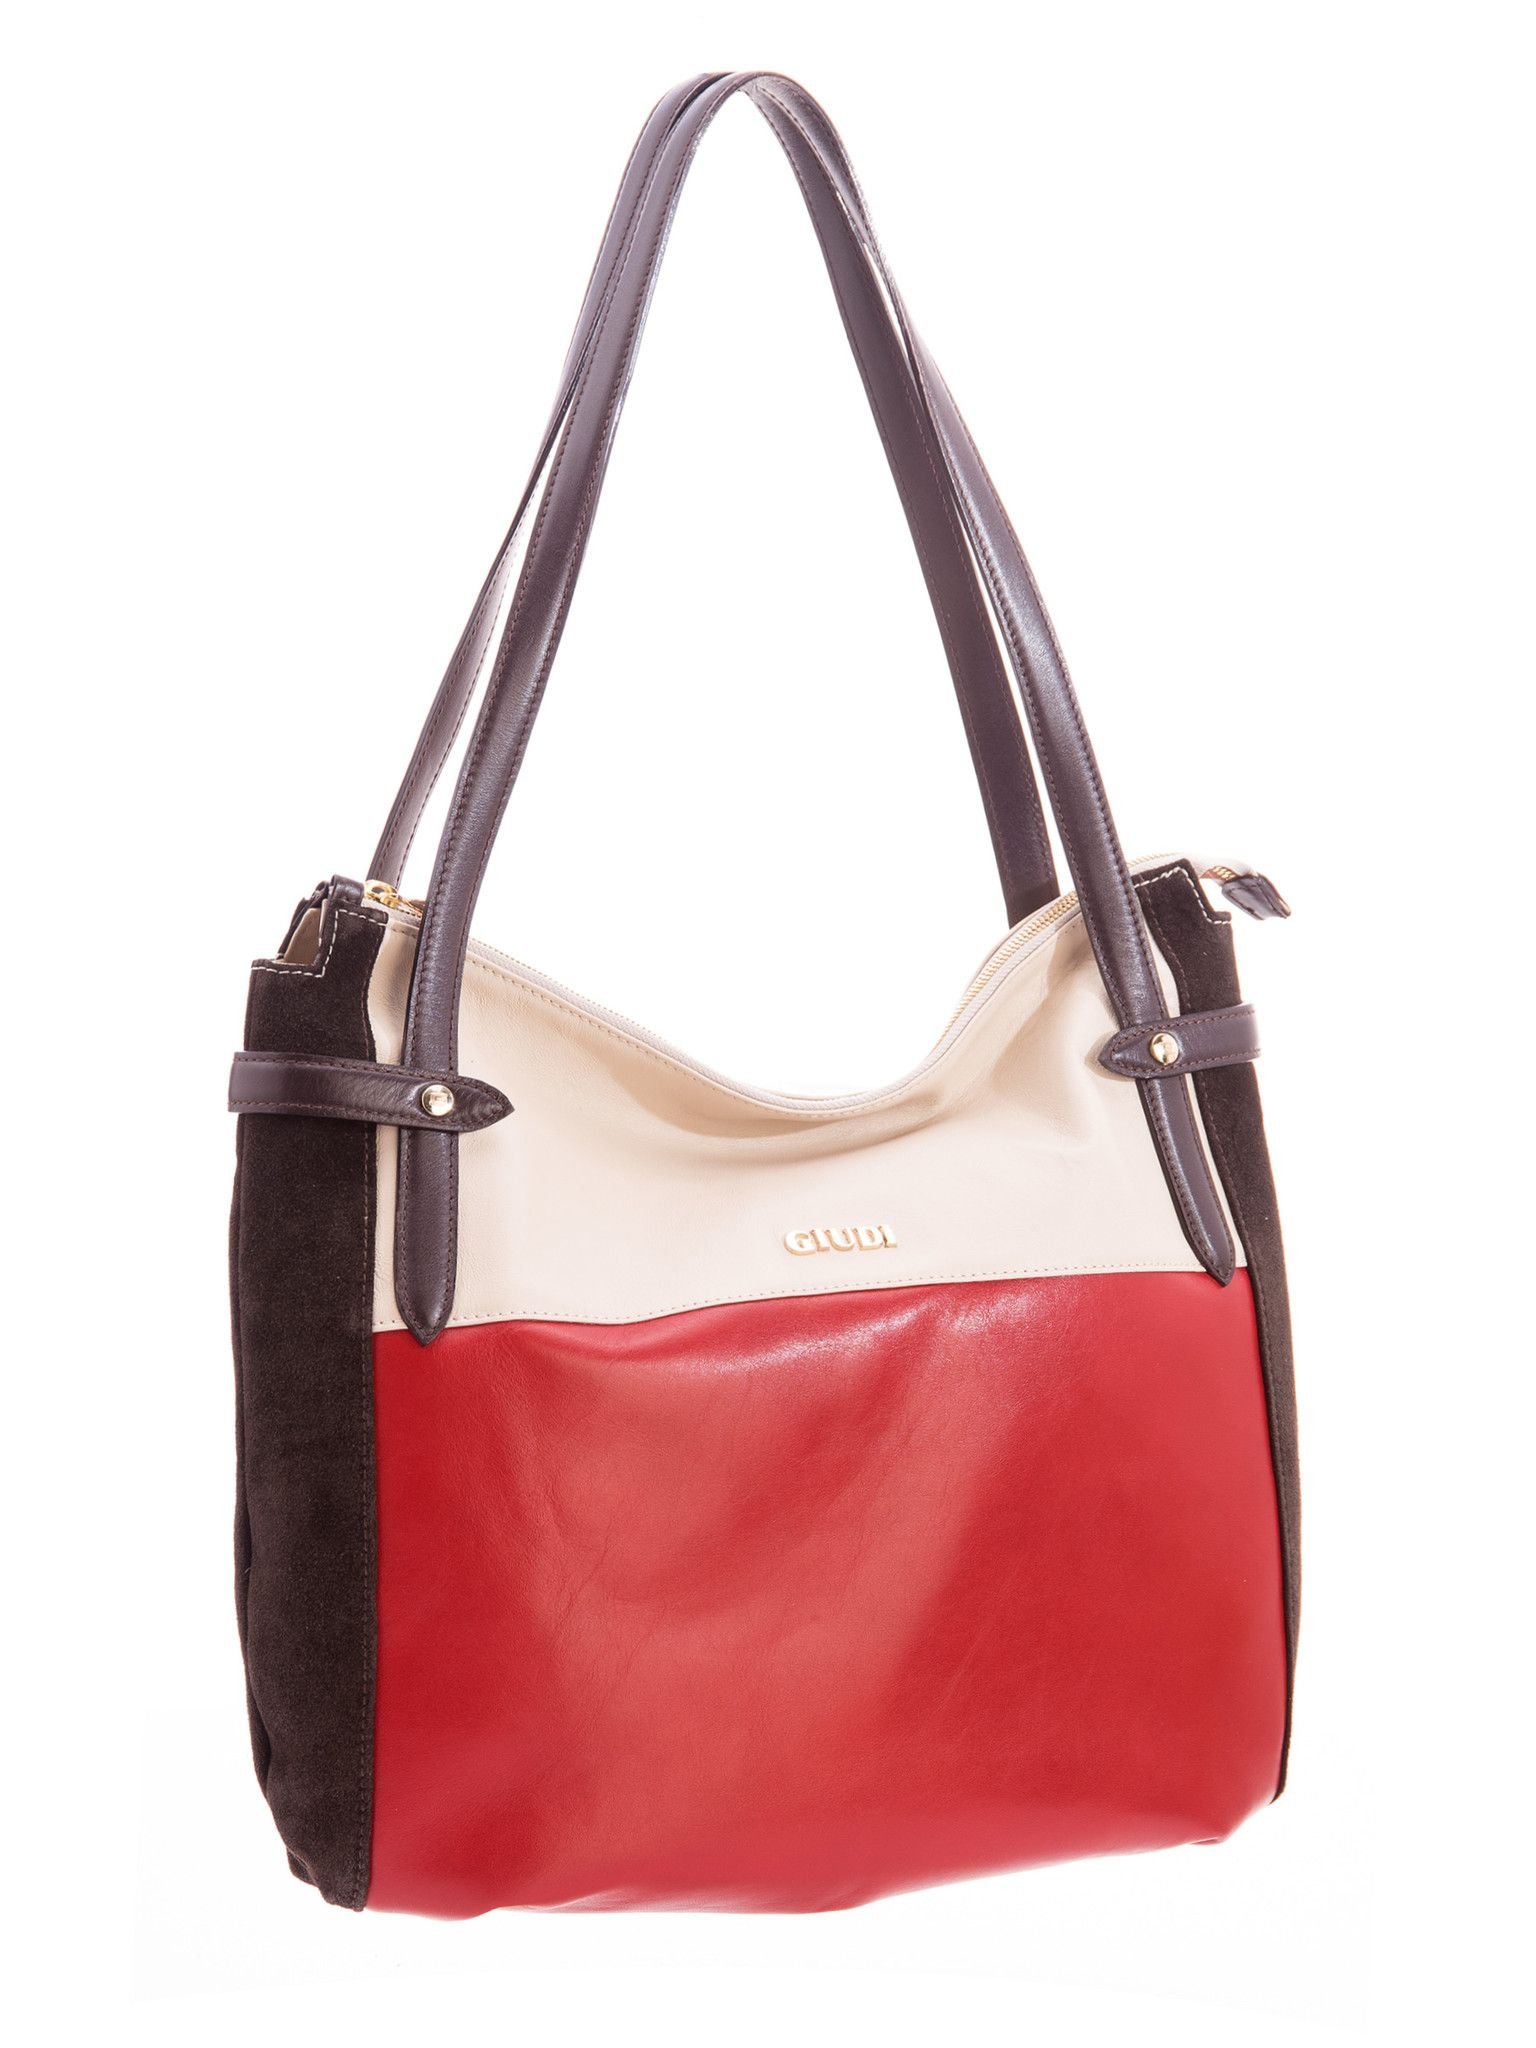 luxury red Italian purse